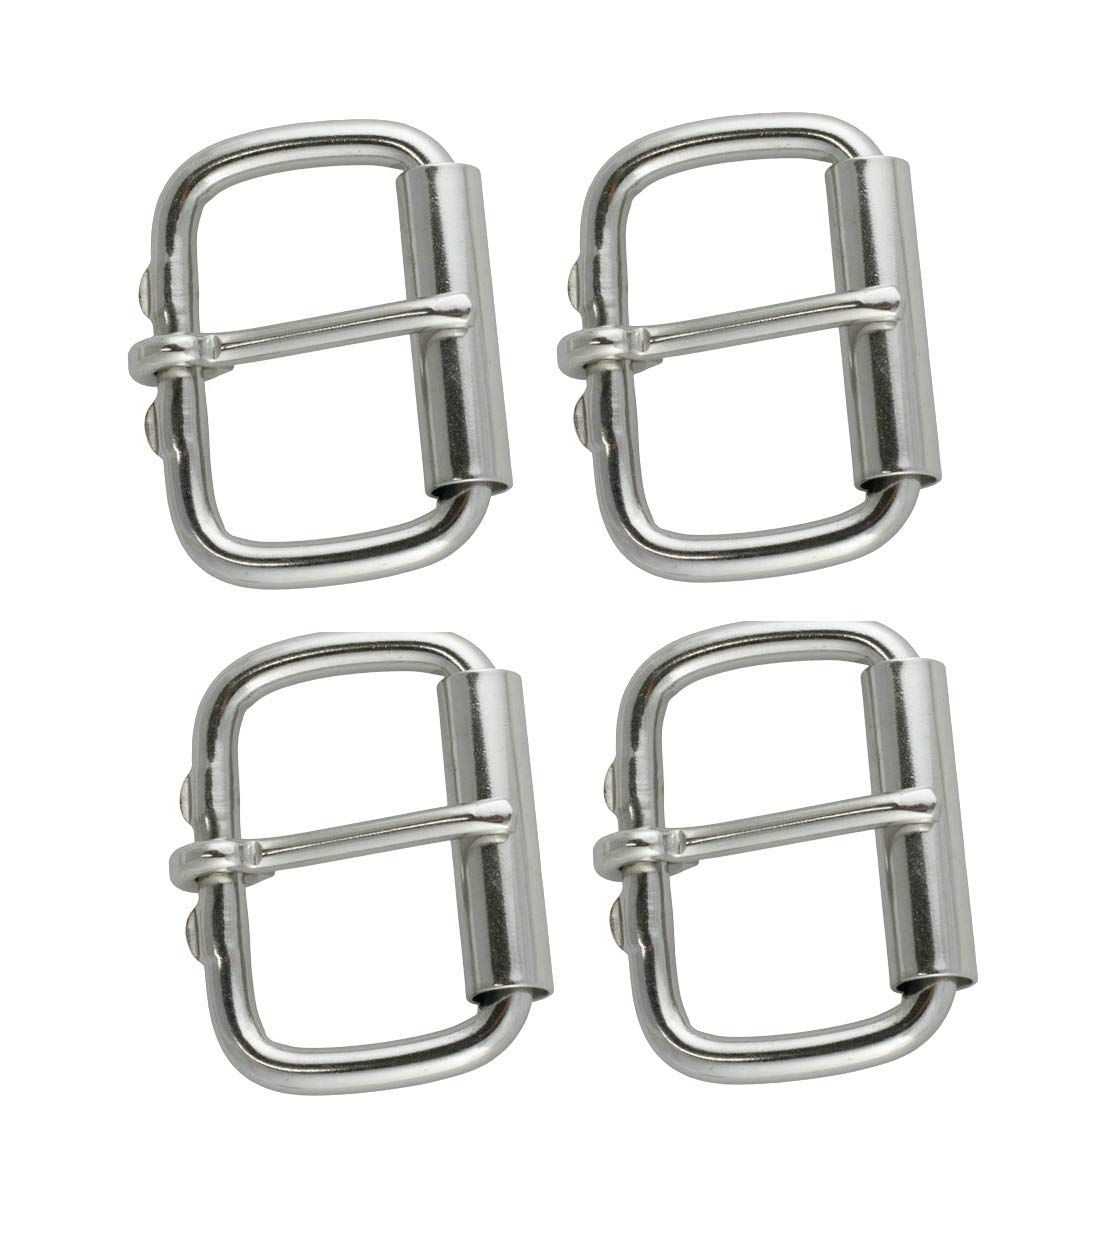 Multi Pack Of 999 Roller Buckles Ideal For Equine Tack